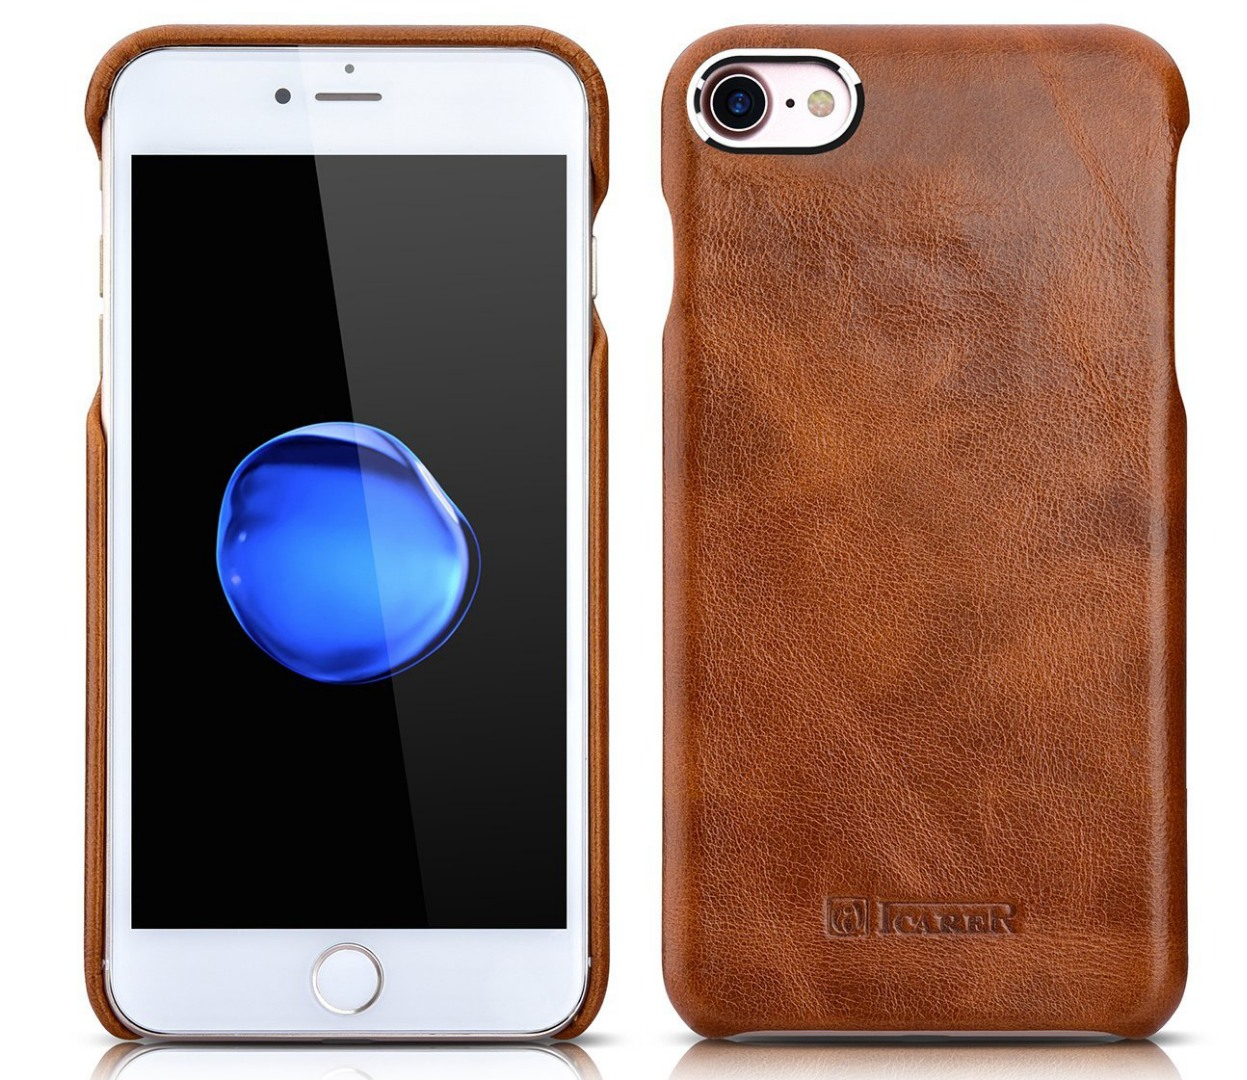 Husa din piele naturala, tip back cover, iPhone 8 / iPhone 7 / iPhone 6 / 6s - iCarer Vintage Oil Wax, Maro tabac